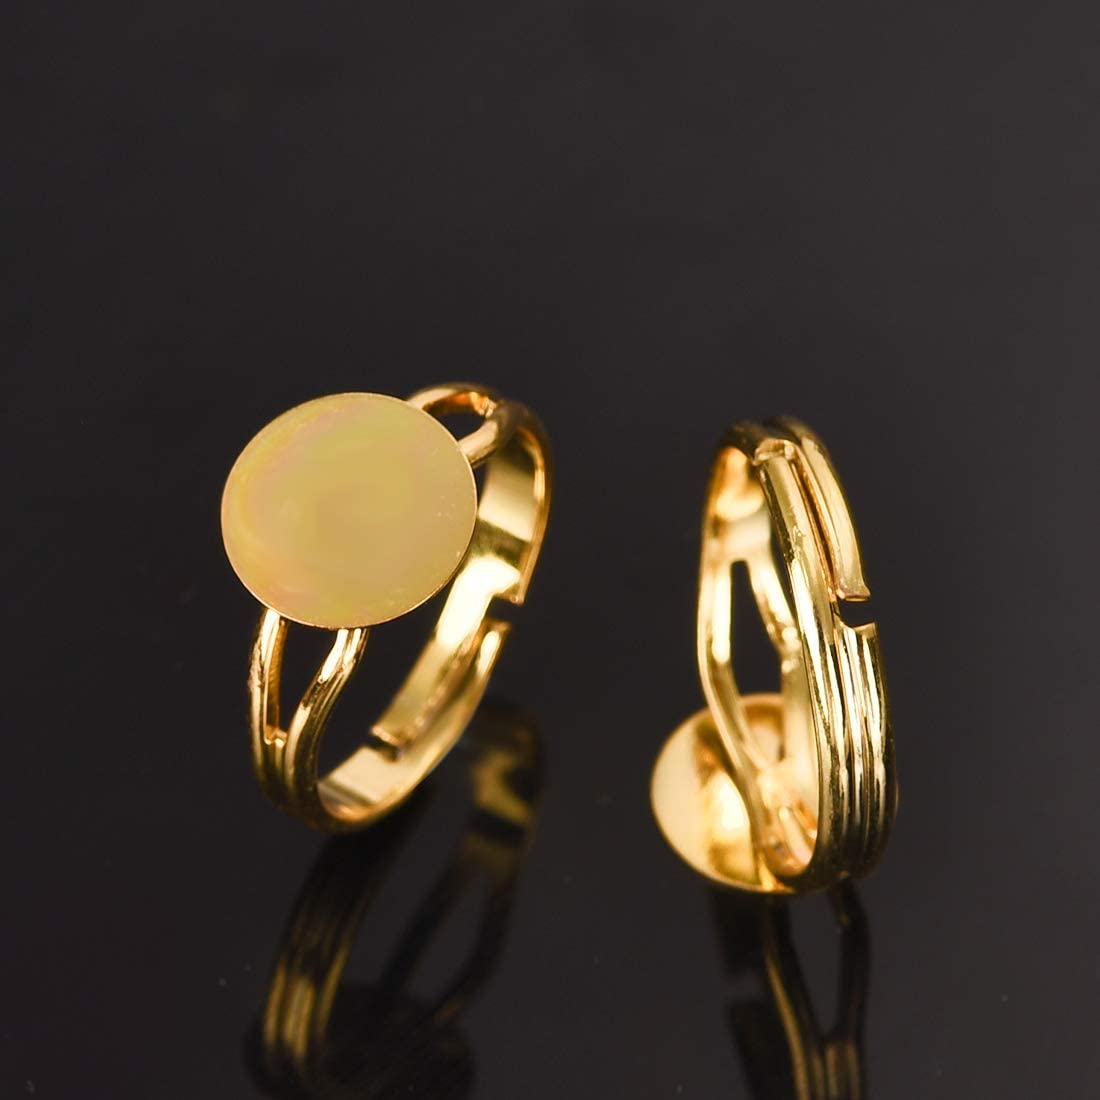 OBSEDE Gold and Silver Plated Adjustable Ring Blanks with 12mm Flat Base 40Pcs Blank Finger Rings Total